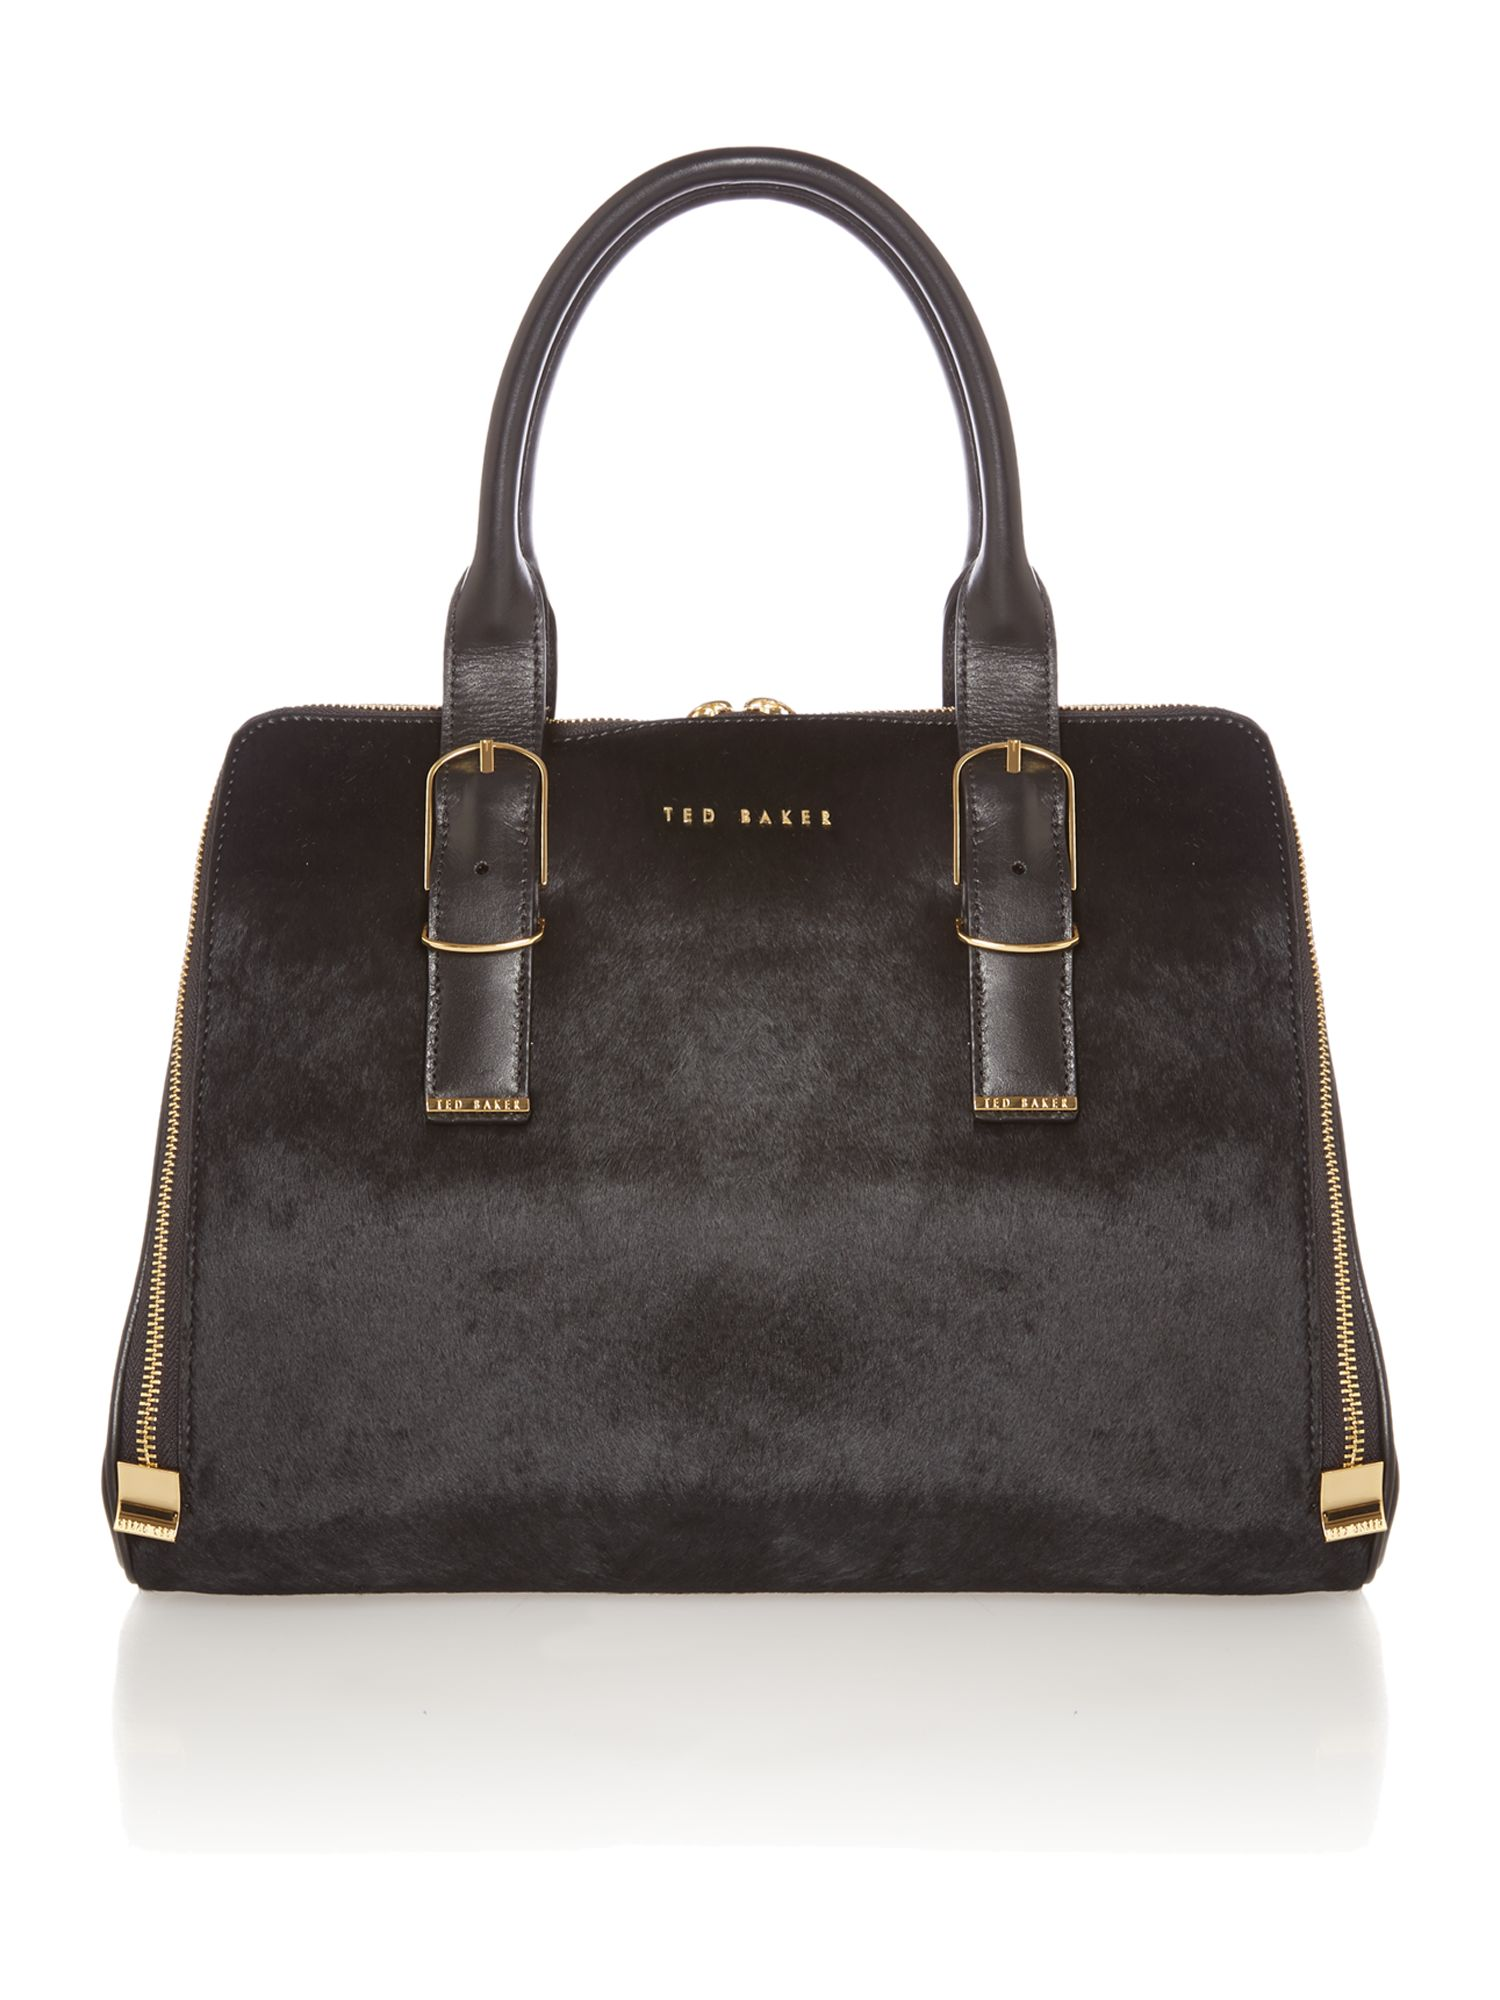 Large black pony skin tote bag